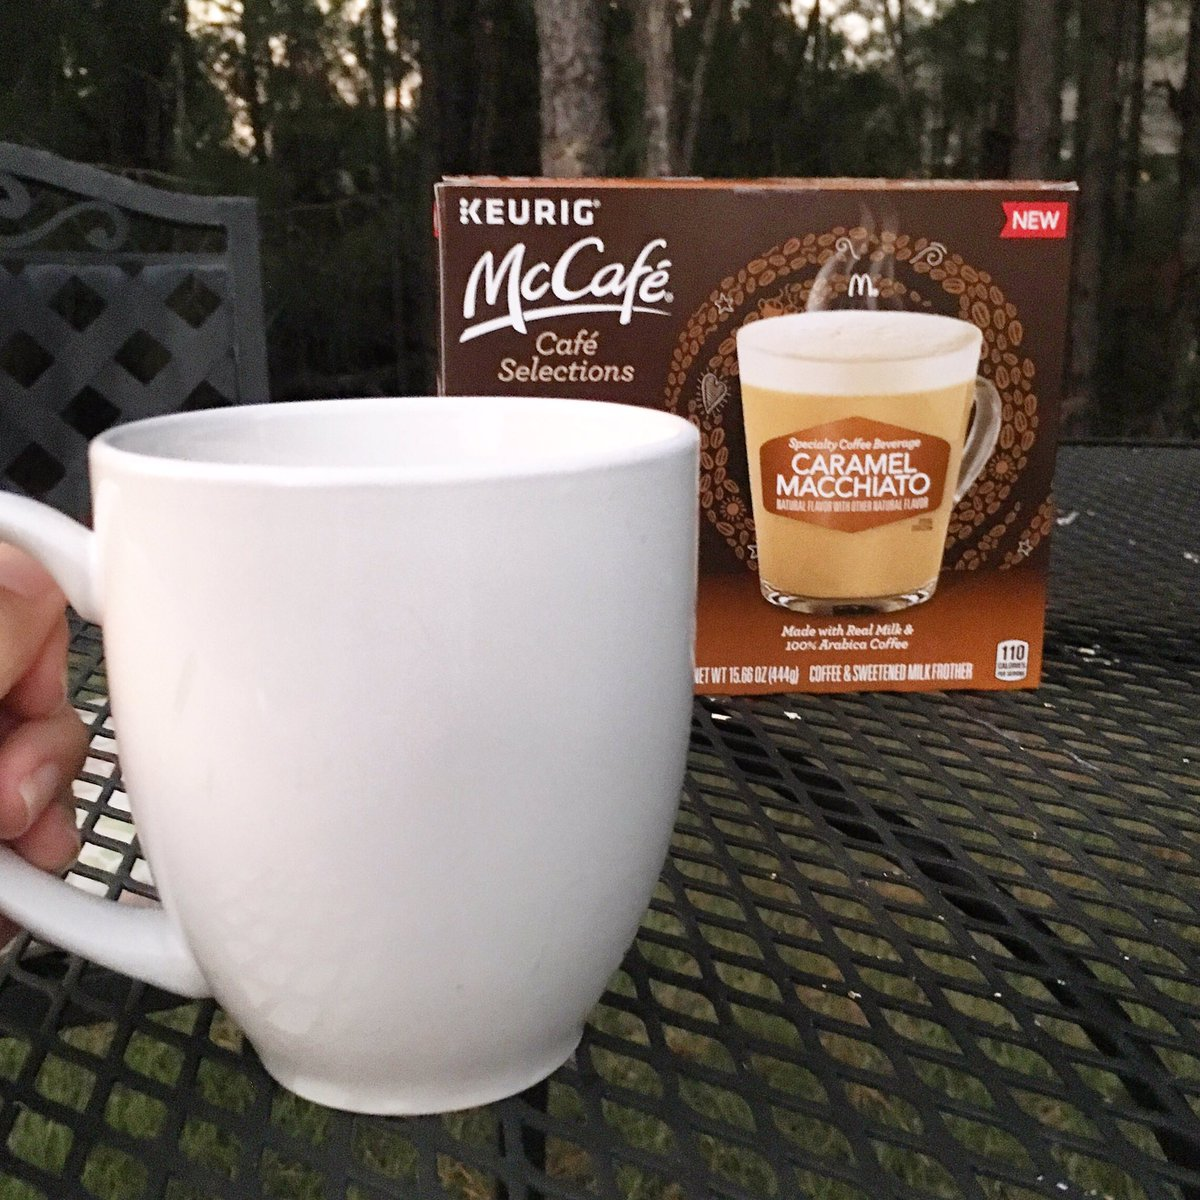 #ad It says fall on the calendar, so head out with a warm beverage.  Mine tonight: McCafe Caramel Macchiato Cafe Selections K-Cups (which I picked up at @Walmart). Because coffeehouse coffee in your backyard sure beats going out for a cup. #SimplyDeliciousAtWalmart @shespeaksup<br>http://pic.twitter.com/pWffaJe0pN